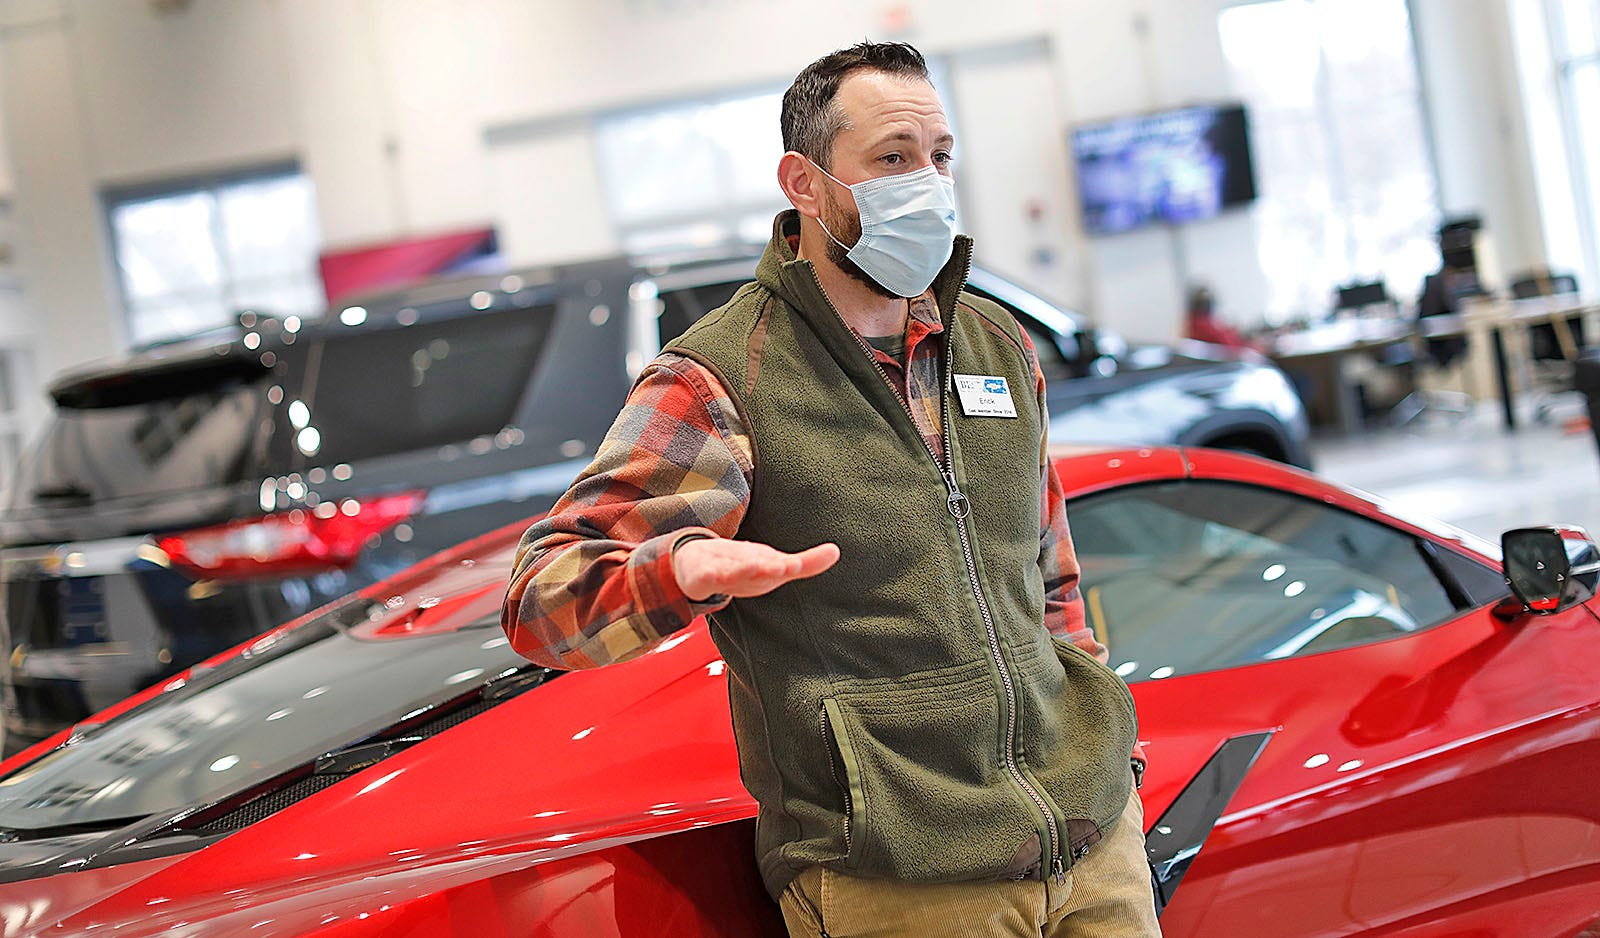 Presidents Day weekend is one of biggest three-day sales periods for local auto dealers. Sales manager Erick Smith is pictured in the showroom at Best Chevrolet in Hingham on Monday, Feb. 15.